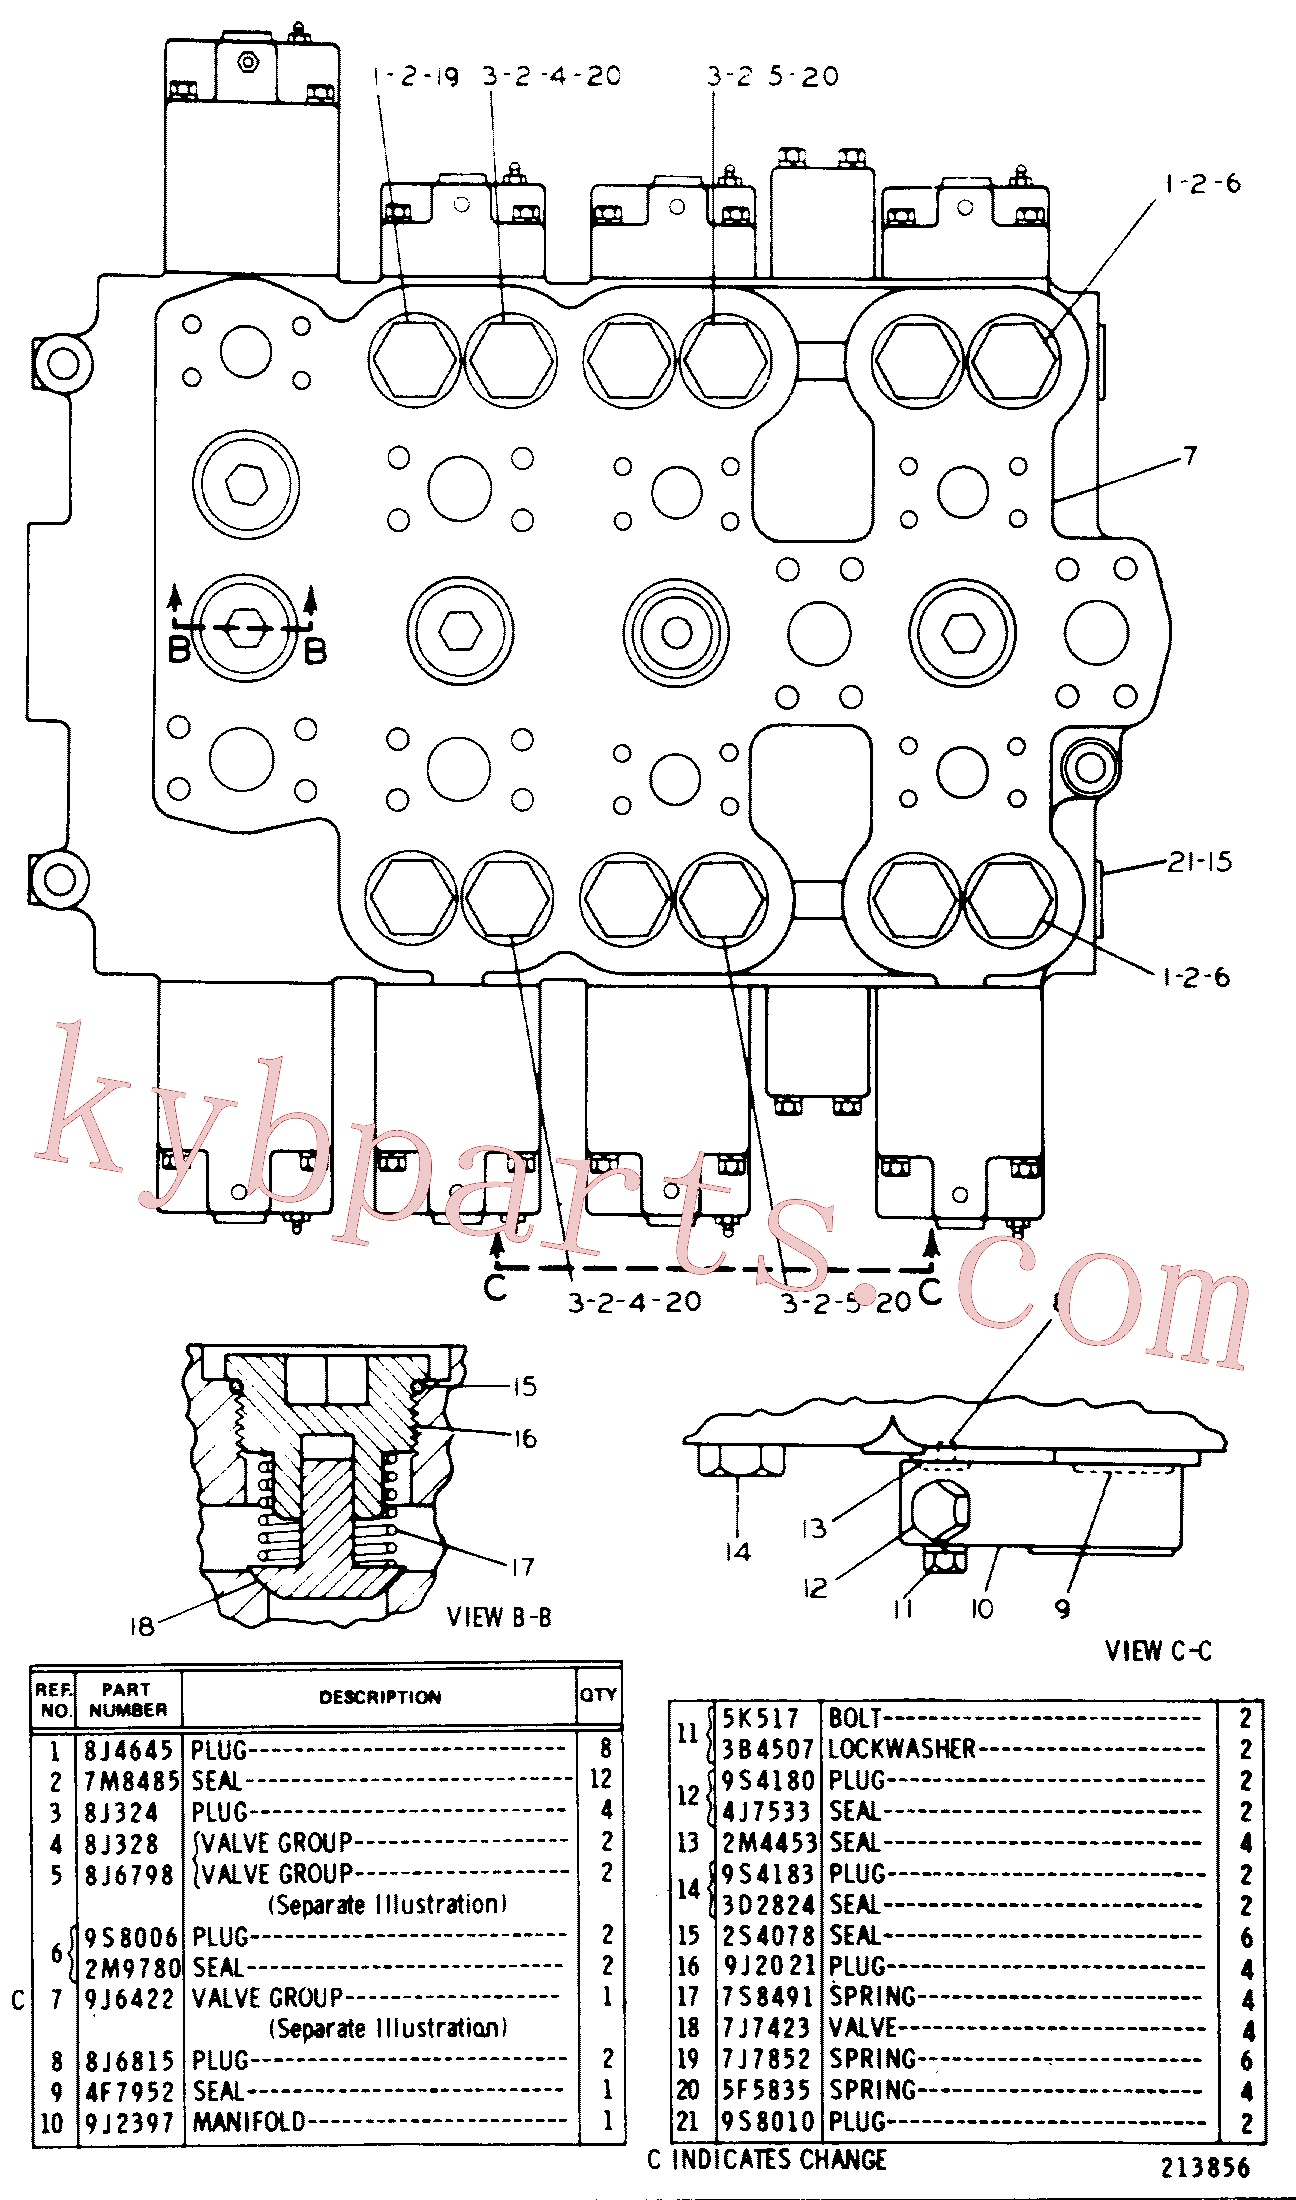 CAT 9J-2021 for 245B Excavator(EXC) hydraulic system 8J-8477 Assembly